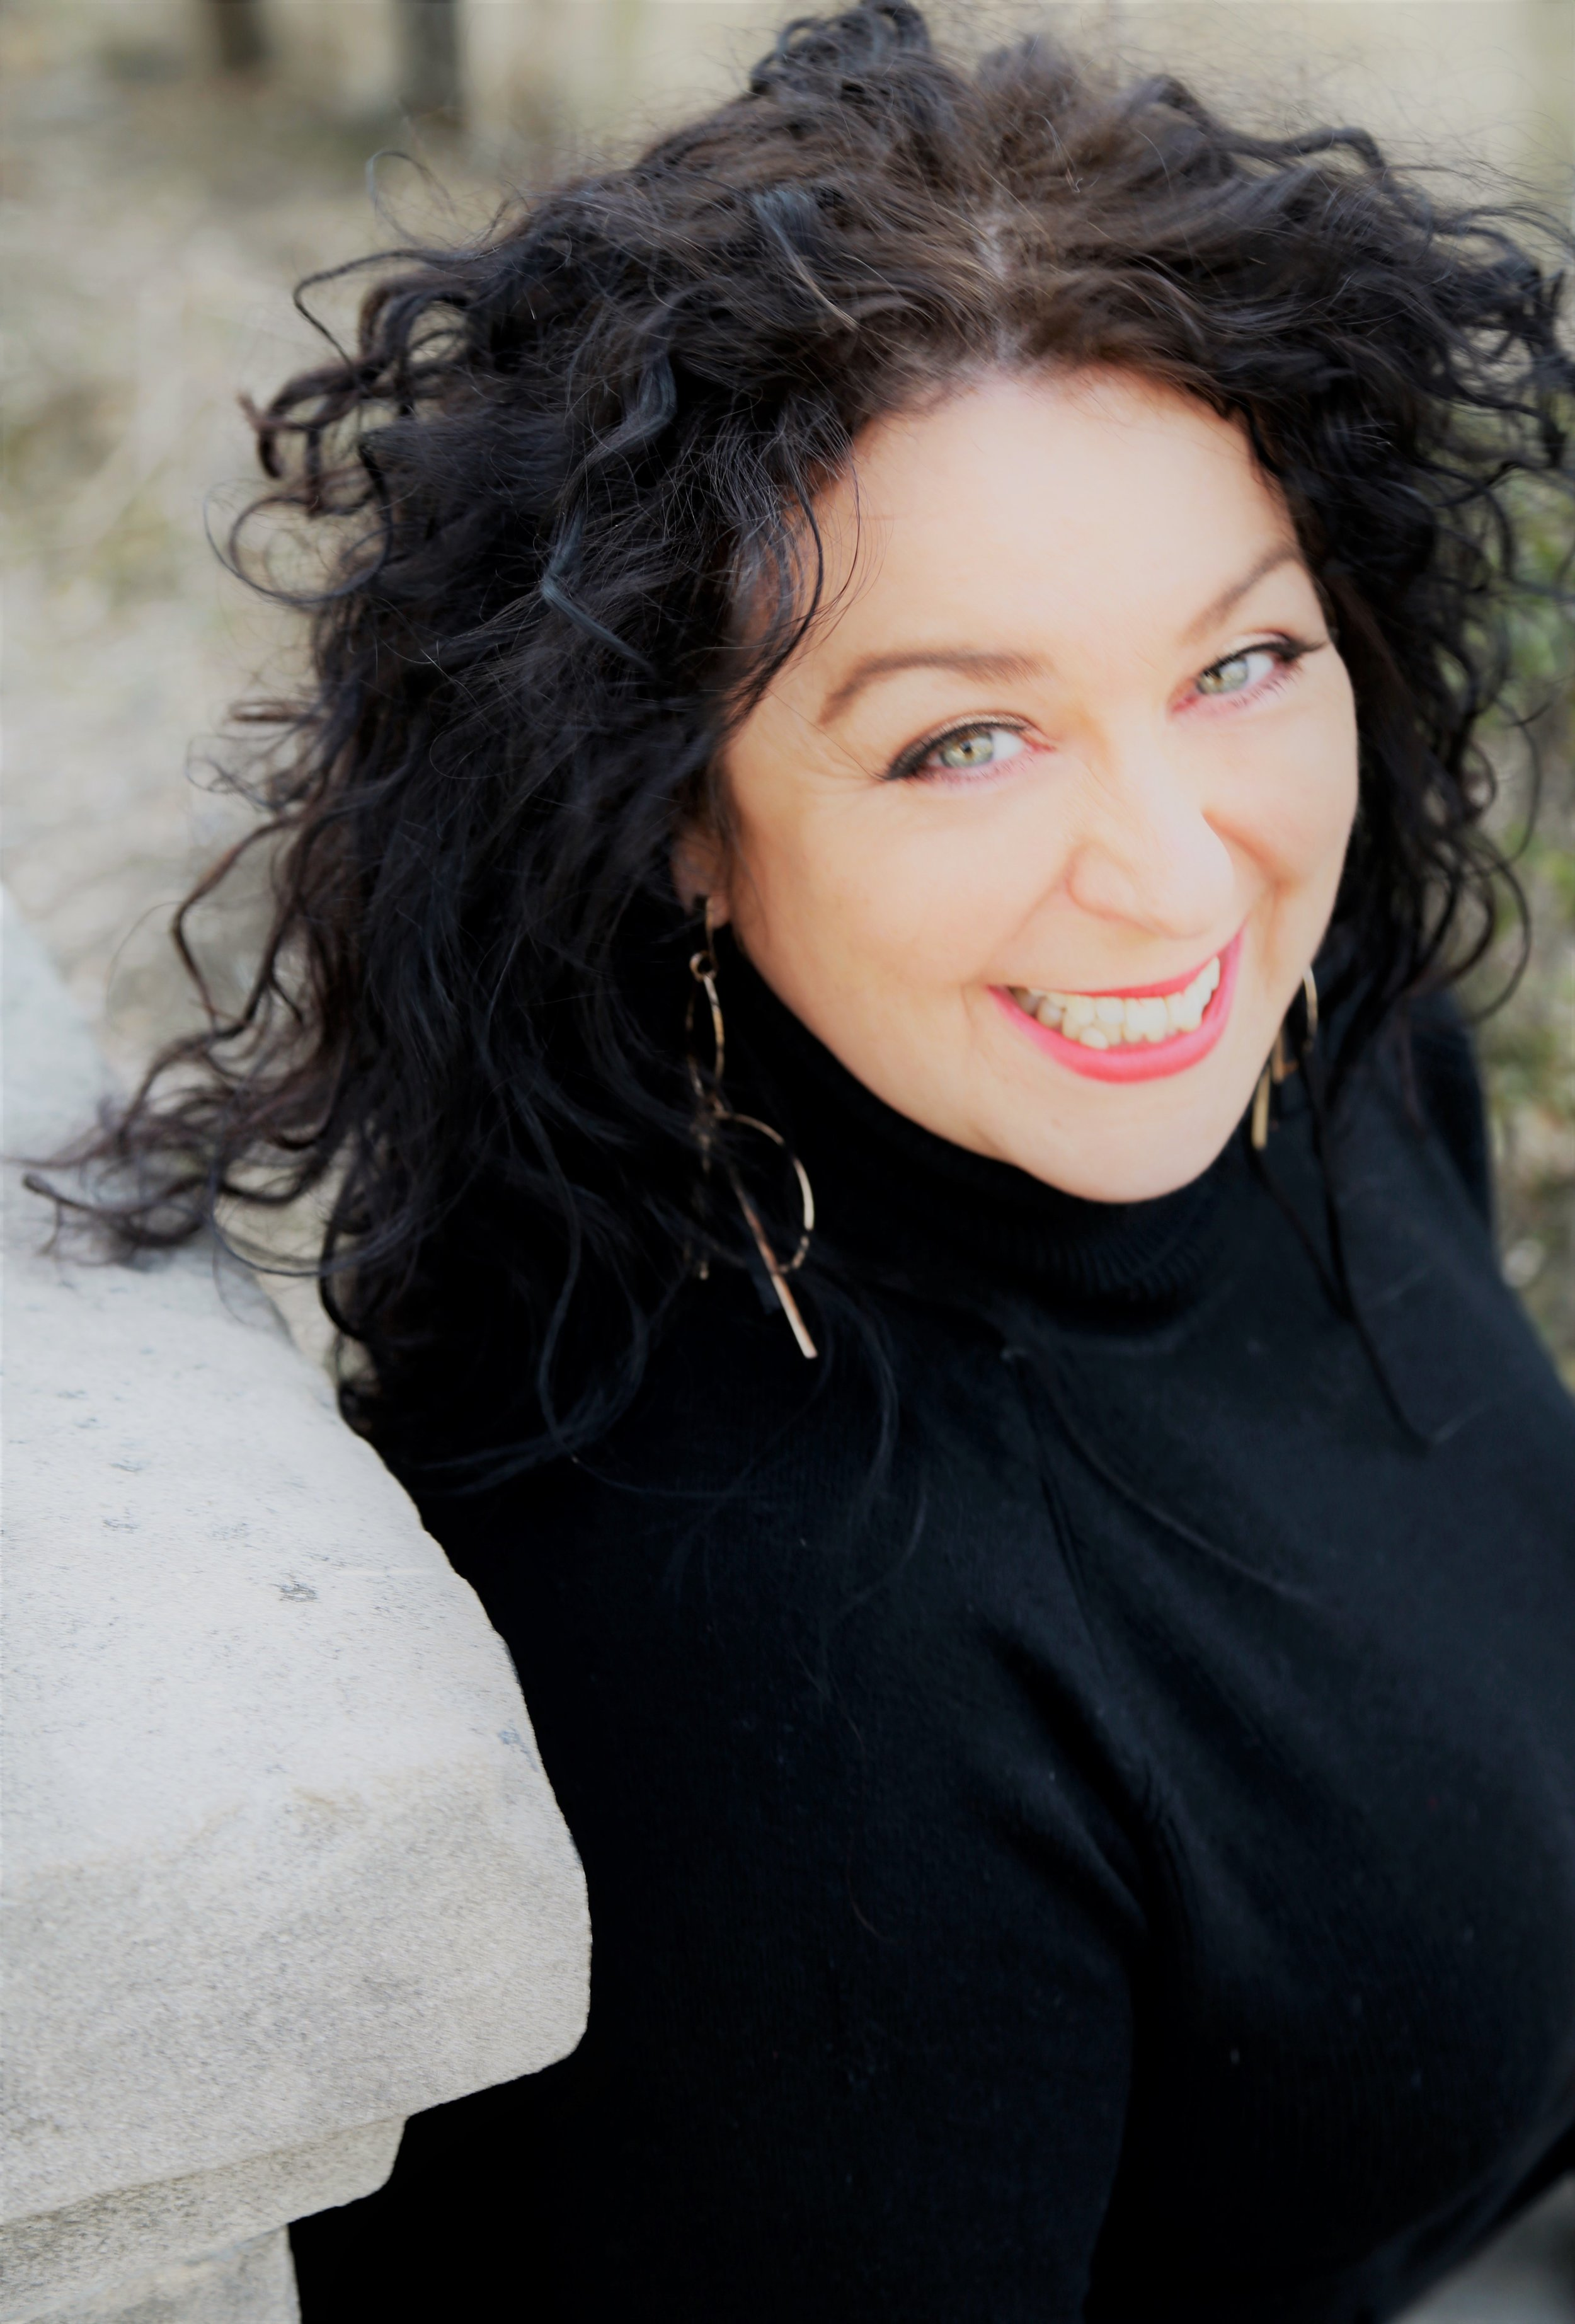 CYNDI darnell |Sexologist Sex & Relationship Therapist - Elle Chase is one of the most dynamic and competent sex educators working in the US today. She's as gifted in transmitting useful information about pleasure, shame and the body as she is in making you laugh your ass off. What a glorious combination of talents.Elle offers useful, practical skills to those seeking knowledge about pleasure, toys, accoutrements and consent for bodies often overlooked in the mainstream. Her special gift is in making people feel comfortable and validated in spaces that traditionally haven't been open to diversity in pleasure and connection.A global expert and advocate for pleasure at any size, Elle is my go-to referral for anyone wanting to know how to smash the stigma regarding weight & body image and its effect on pleasure and intimacy.She's also a really, really, really nice person, one of my faves. Just sayin'.